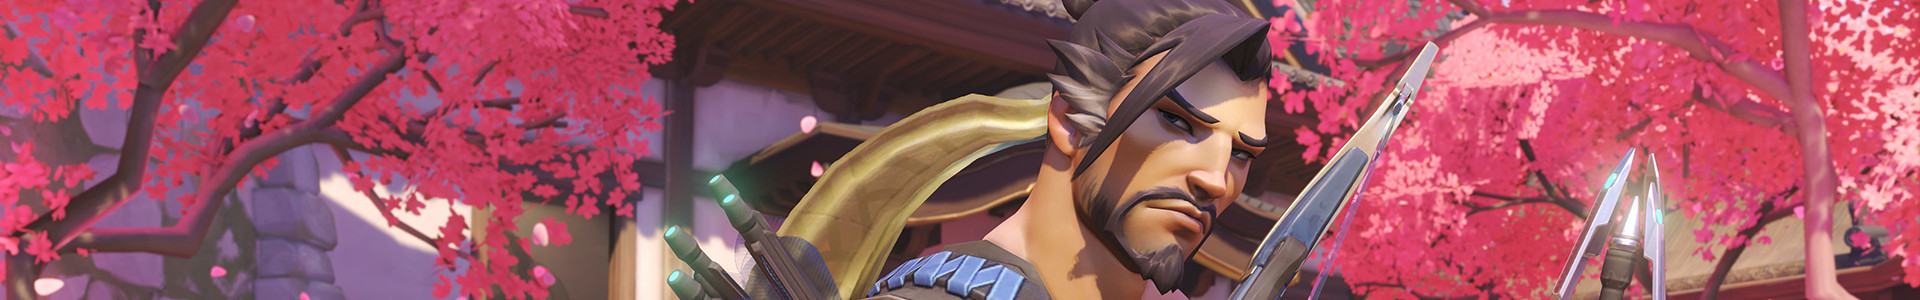 Banner media of Overwatch video game.